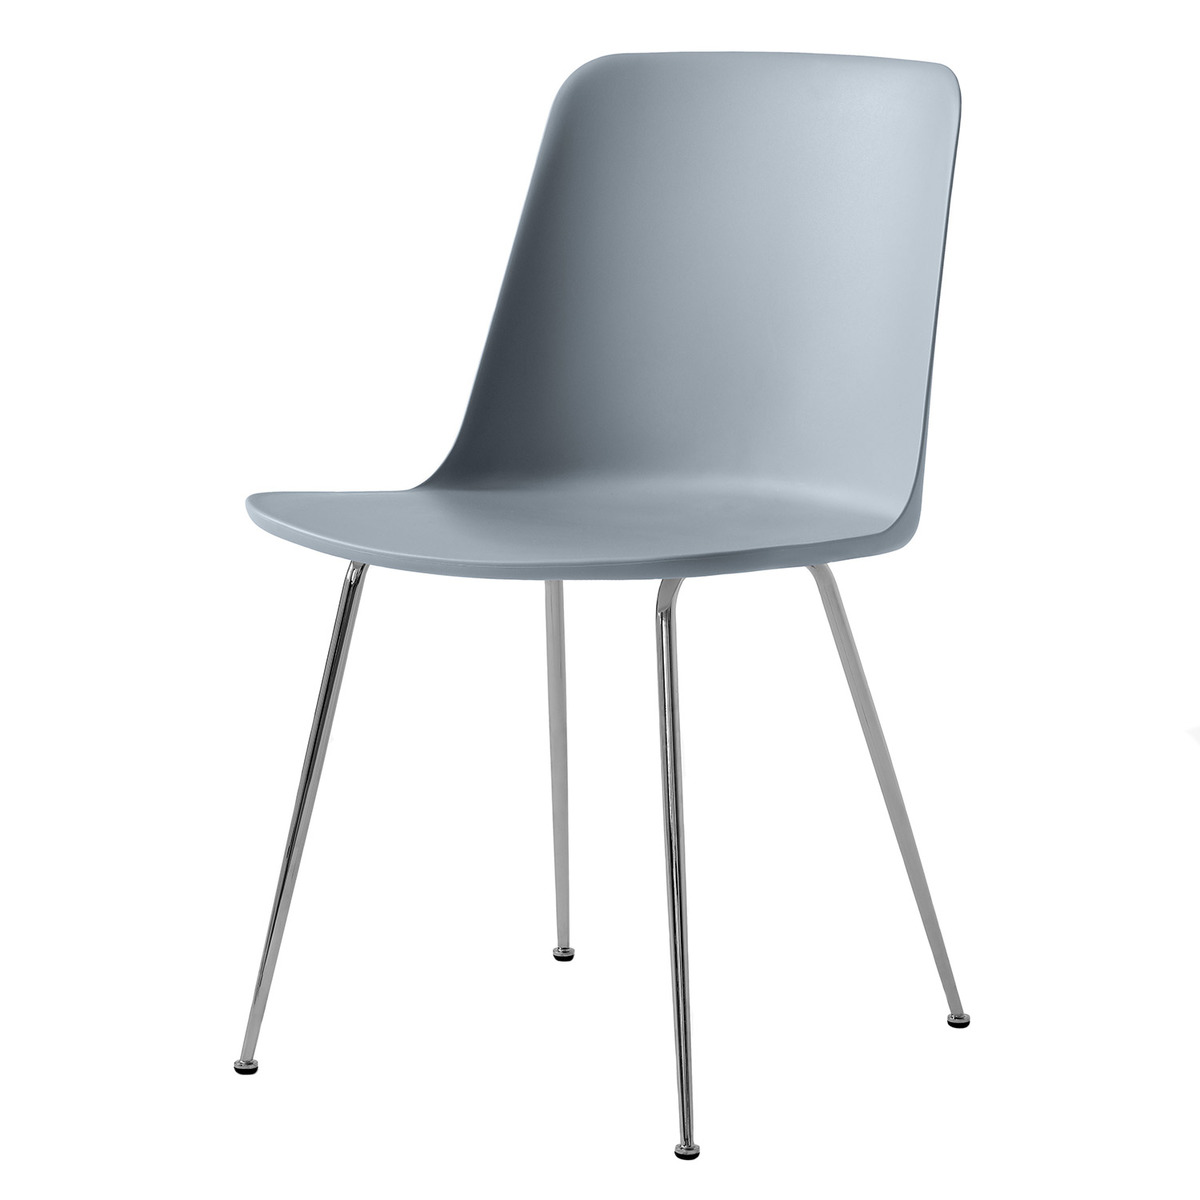 &Tradition Rely HW6 chair, chrome - light blue from &Tradition